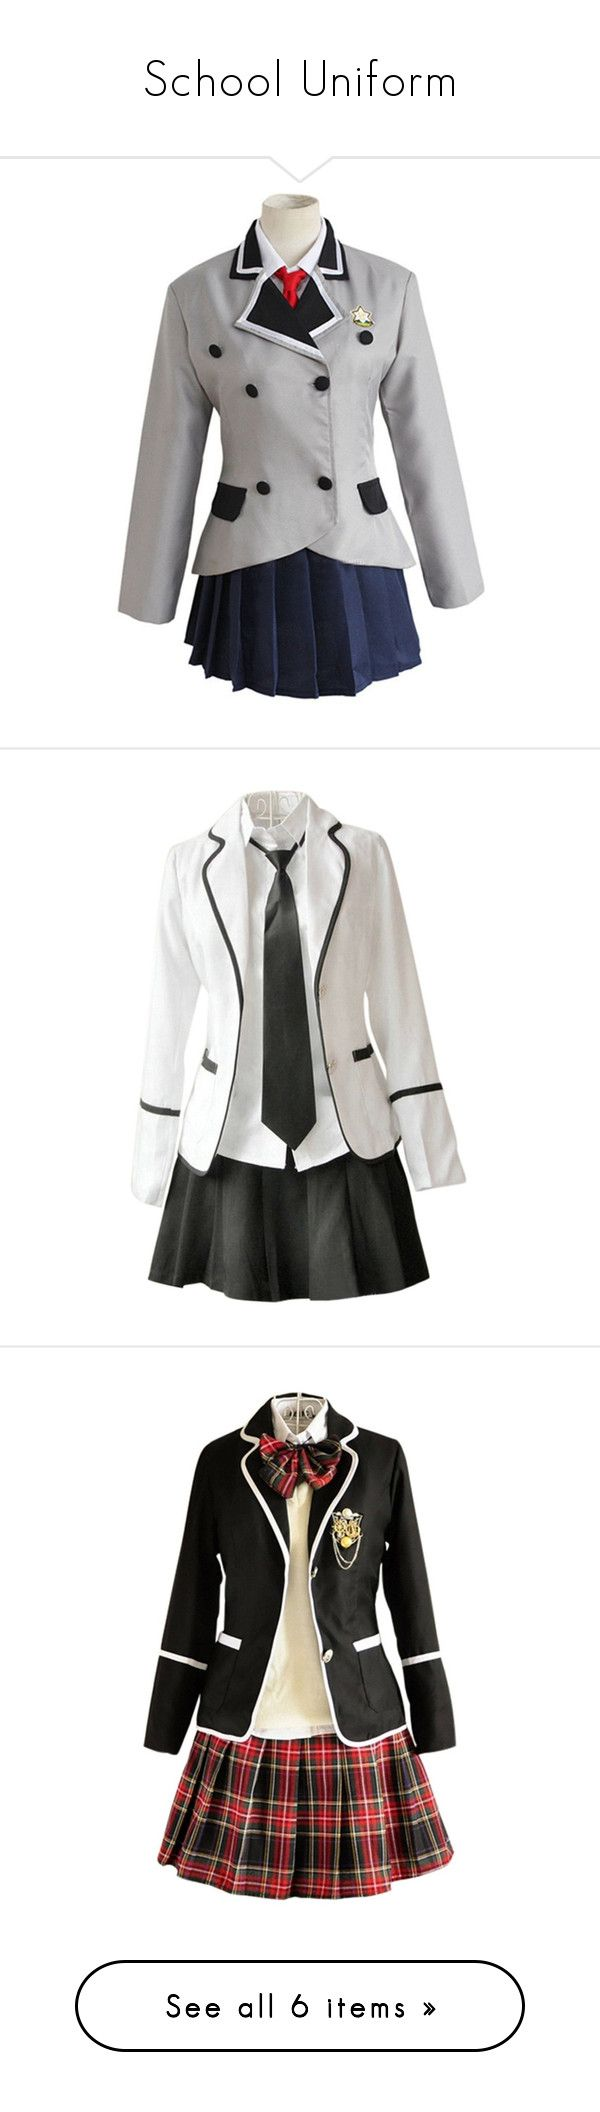 """School Uniform"" by bubble-loves-you ❤ liked on Polyvore featuring cosplay, dresses, other, school, uniforms, outfit, random and anime"